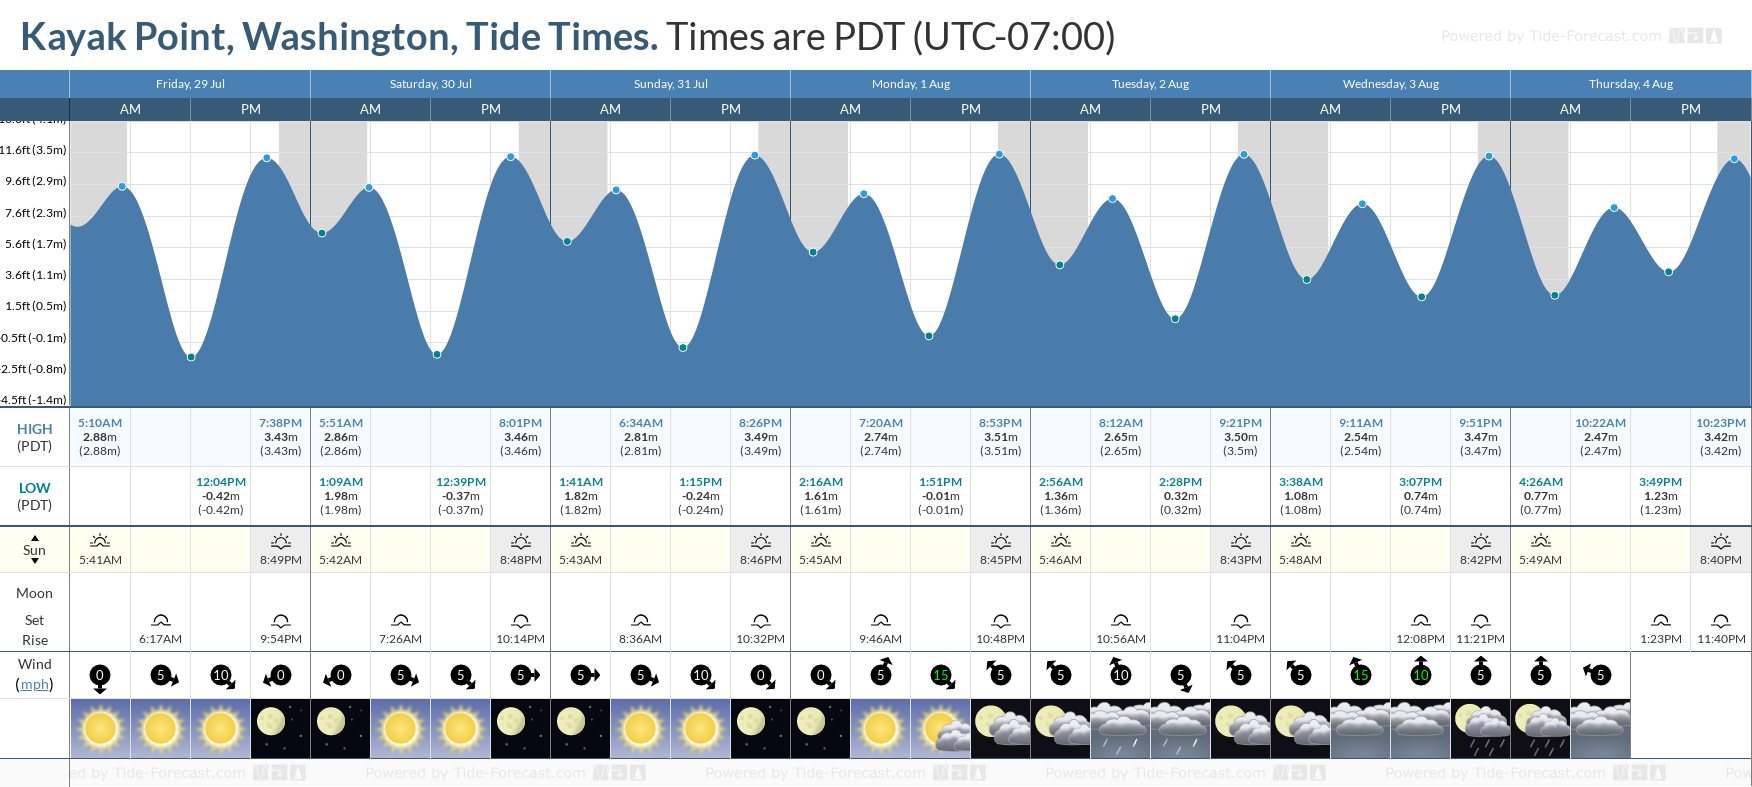 Kayak Point, Washington Tide Chart including high and low tide tide times for the next 7 days